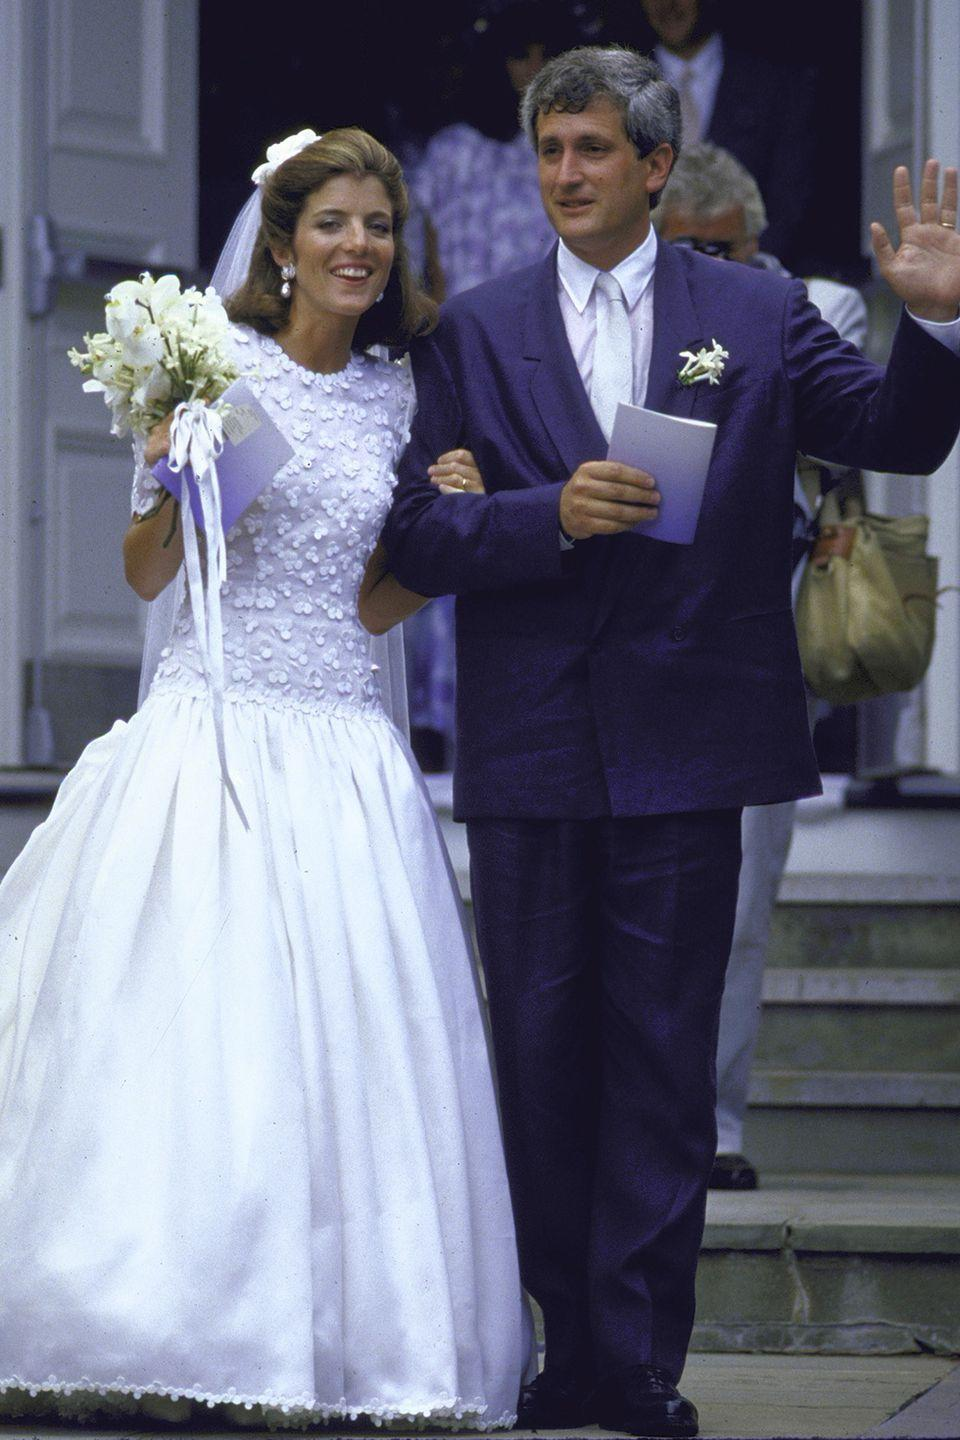 <p>The former first daughter wore a white silk organza dress by Carolina Herrera to marry Edwin Schlossberg in Massachusetts. Featuring a long bodice embroidered with white shamrocks to incorporate her father's Irish heritage, the gown's skirt had a 25-foot train.</p>